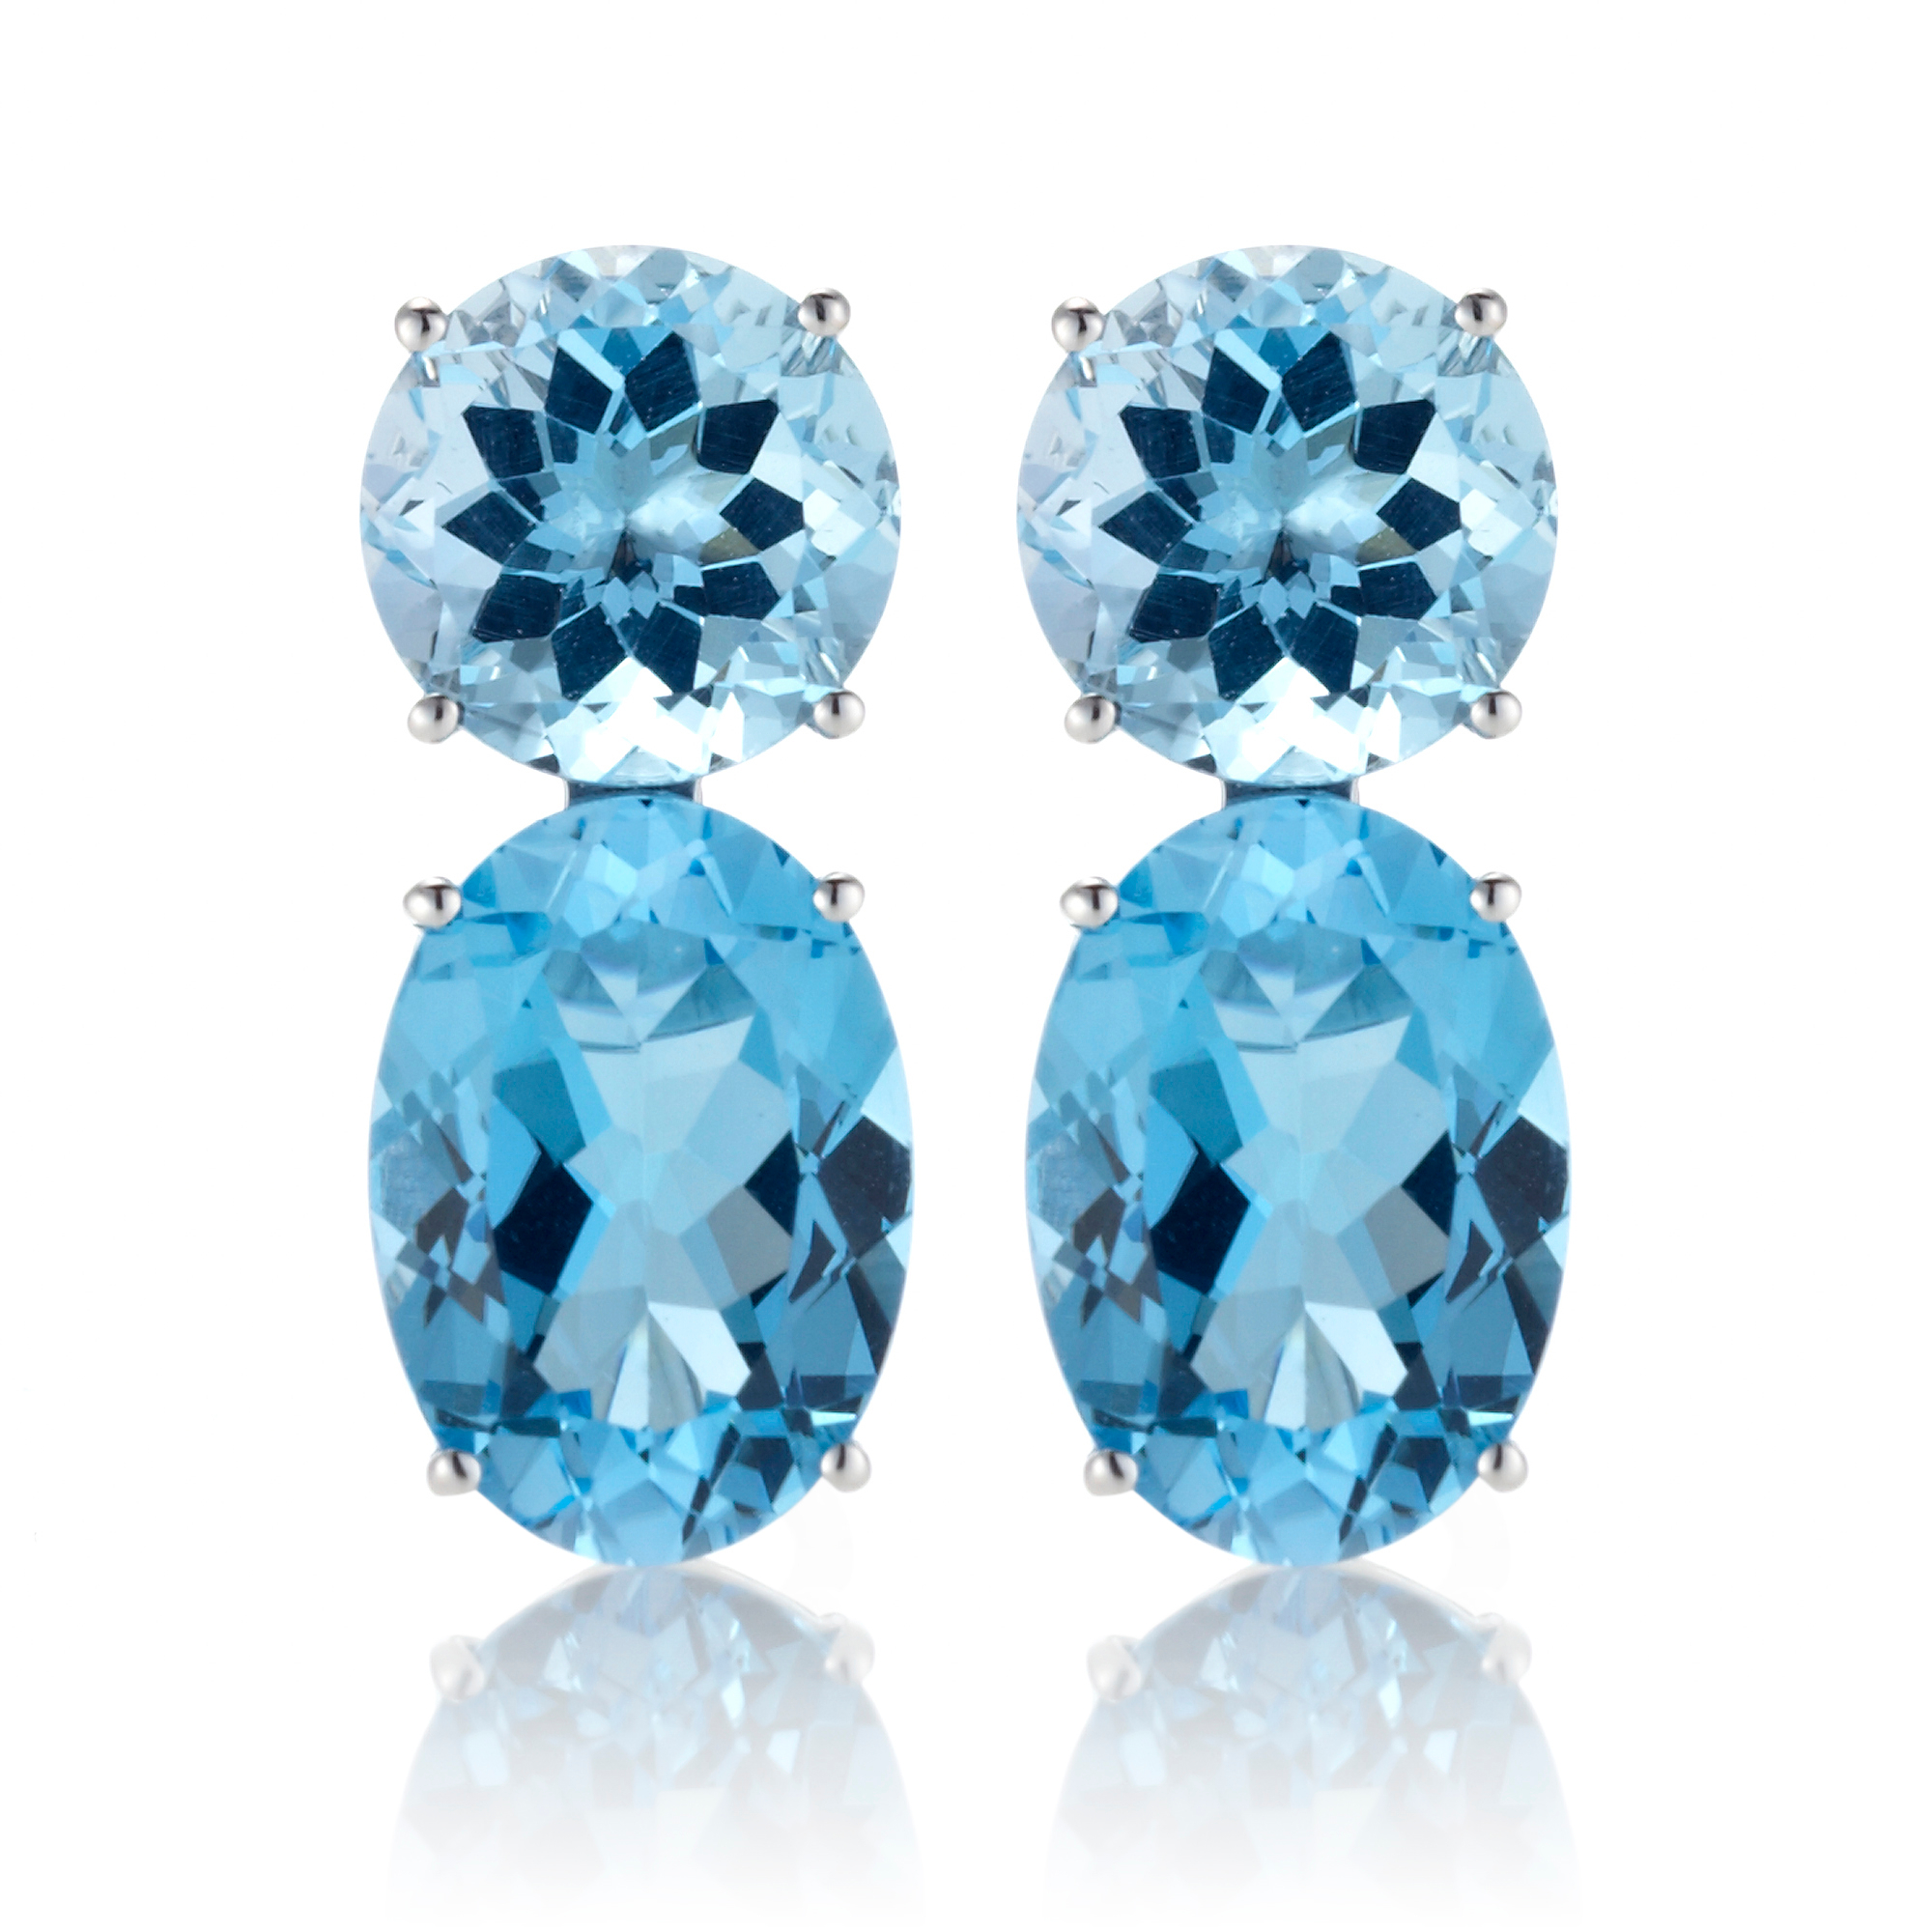 Gump's Round & Oval Faceted Two-Tone Blue Topaz Earrings